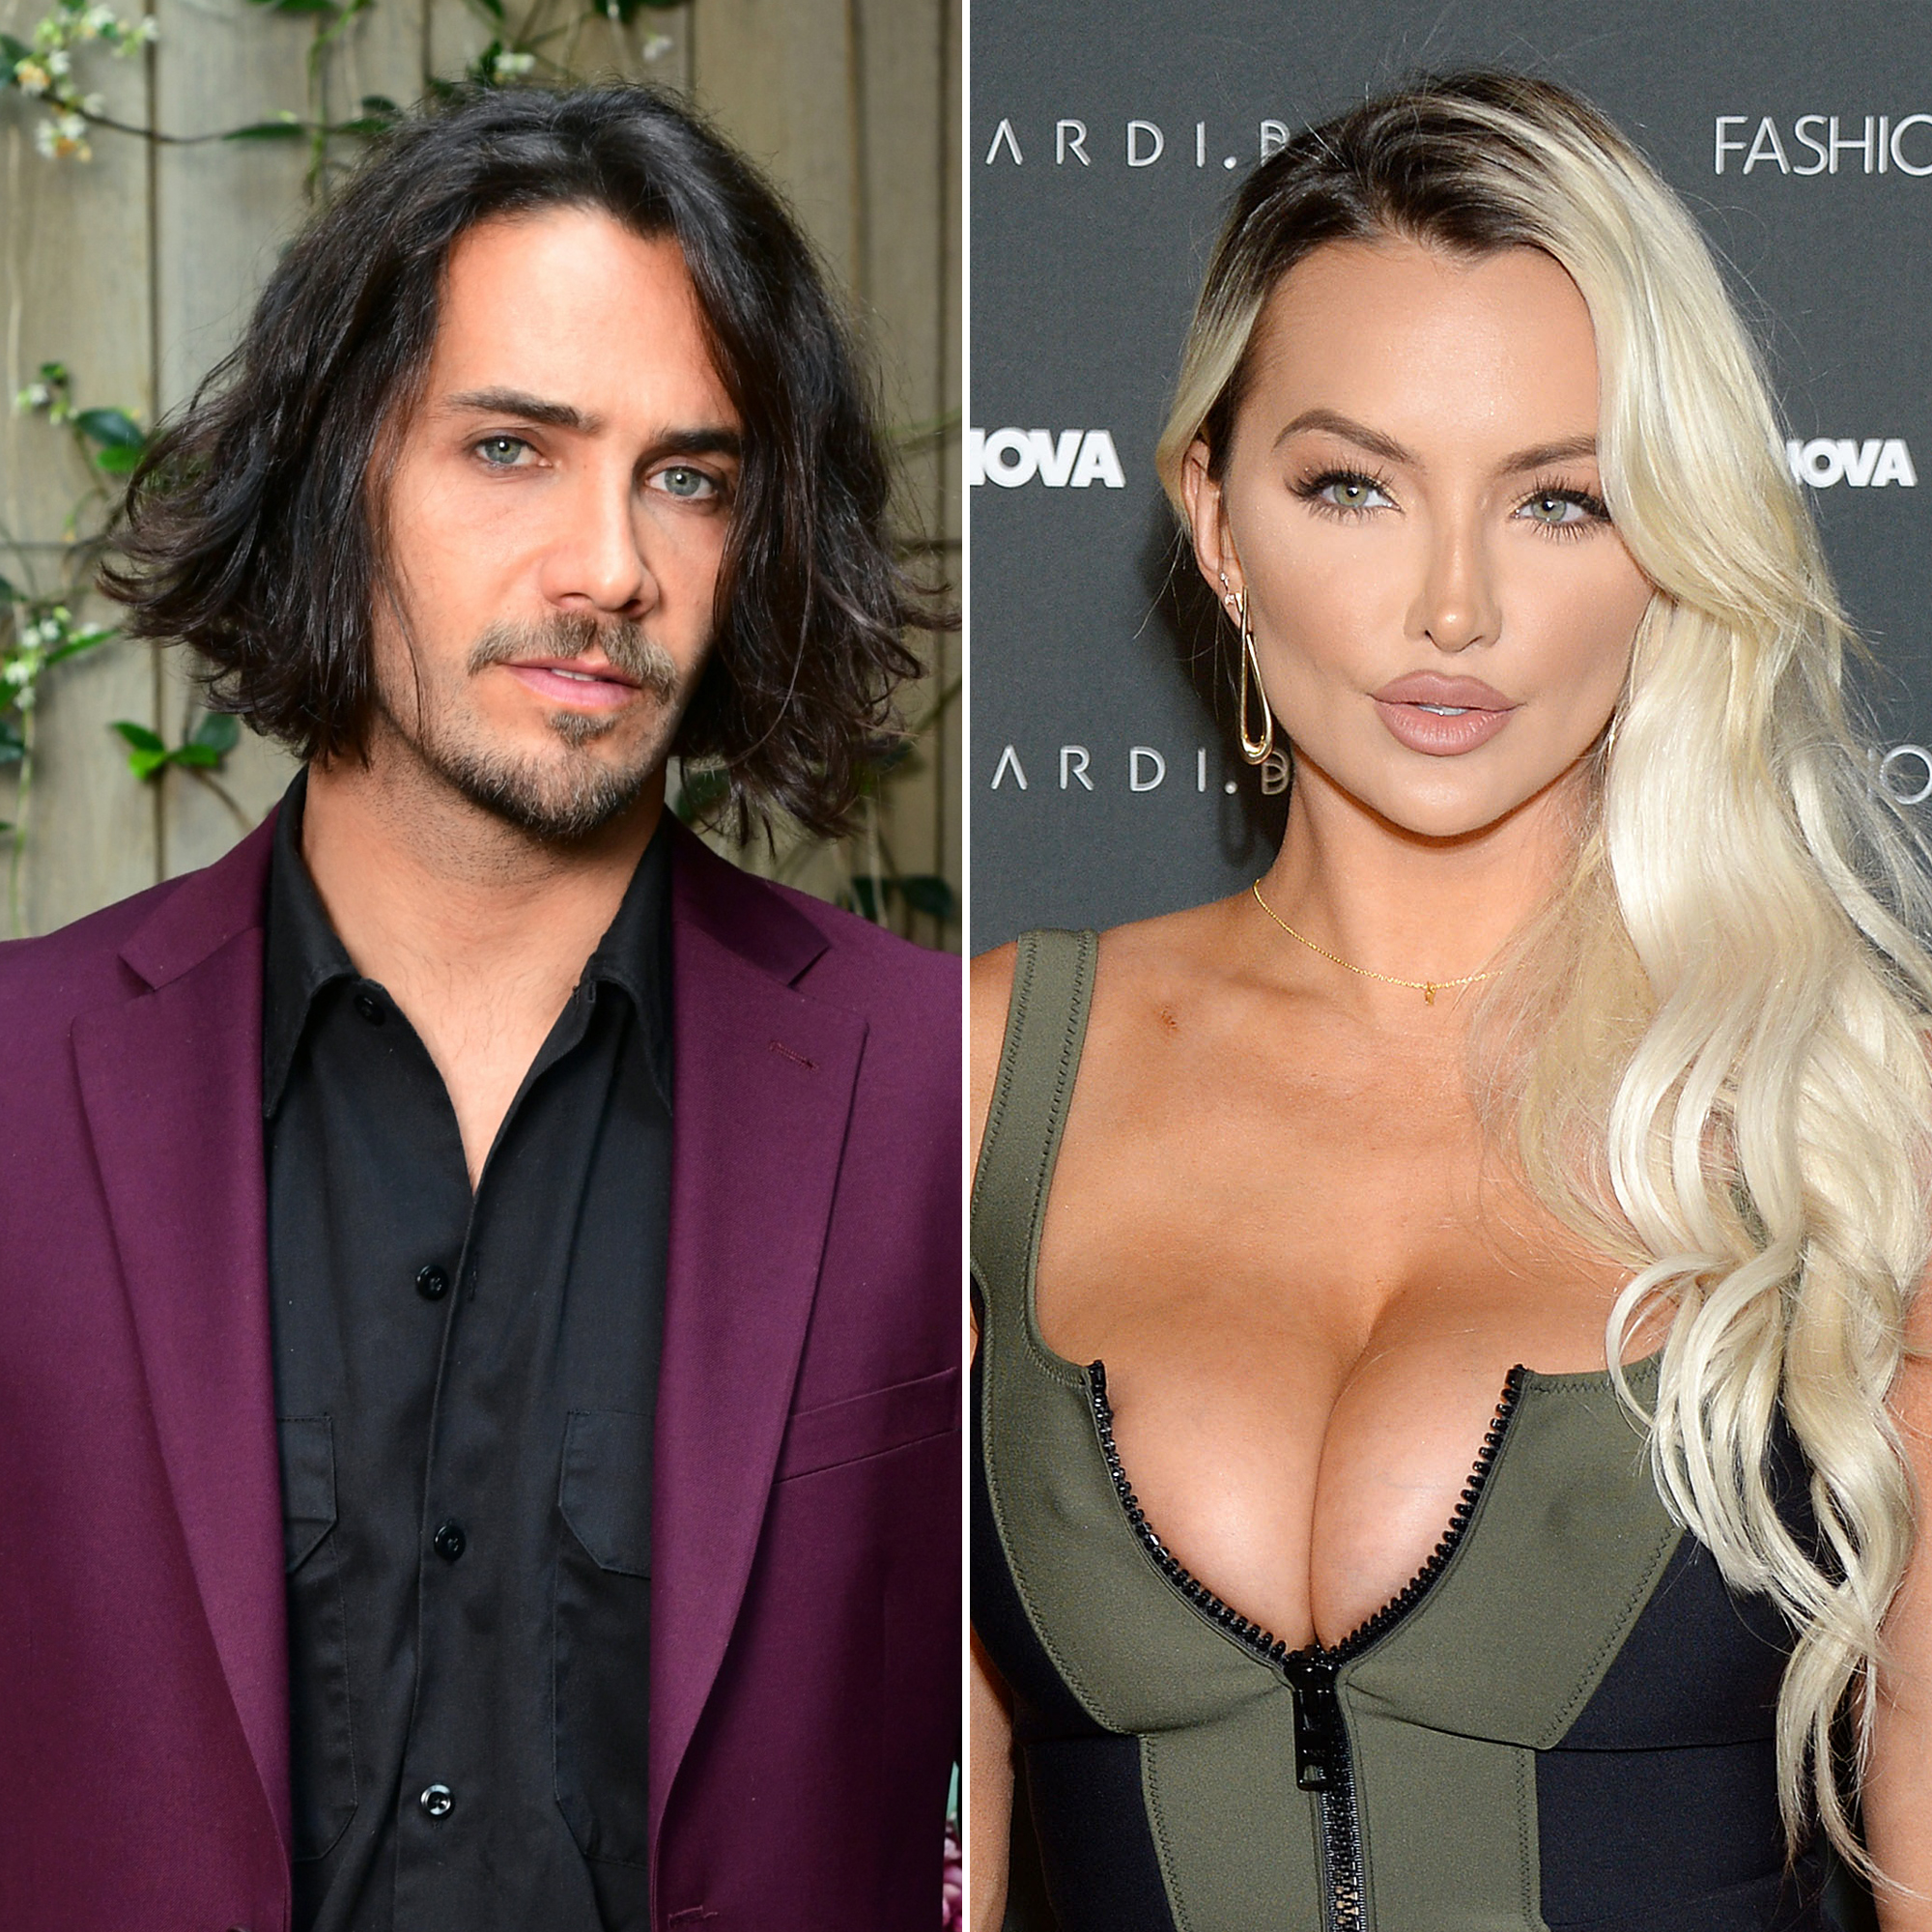 'The Hills' Star Lindsey Pelas 'Doesn't Worry' About Boyfriend Justin Bobby Reuniting With Ex Audrina Patridge